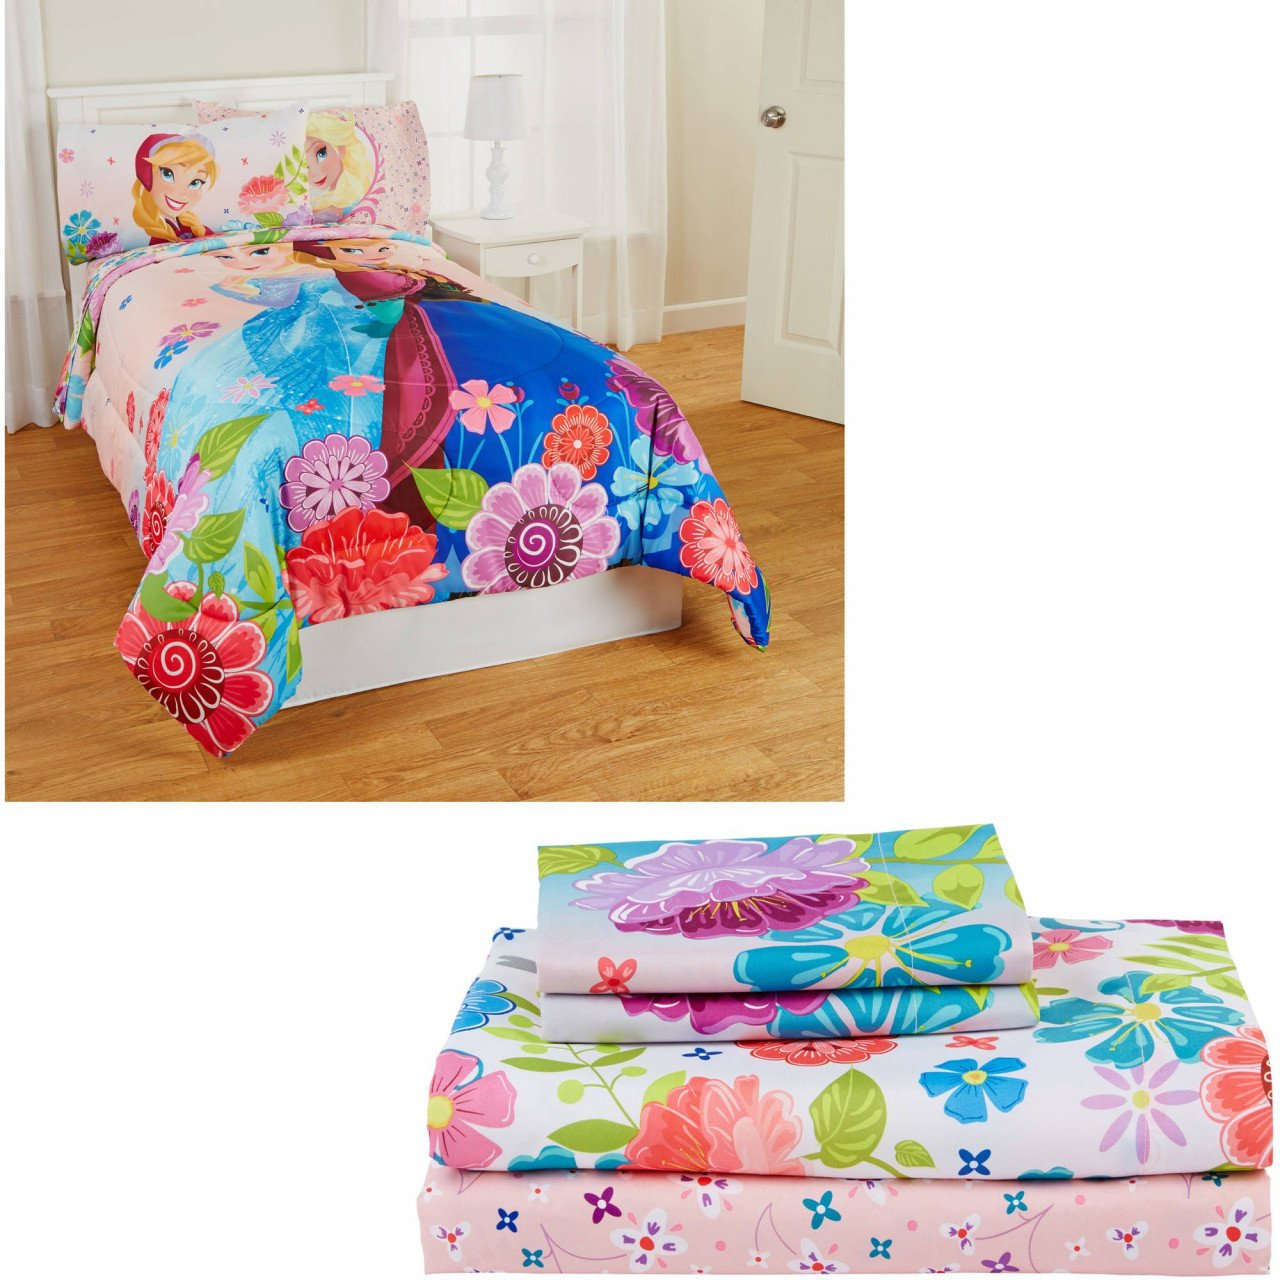 Disney Cars Bedroom Set Elegant Frozen Bedroom Set — Procura Home Blog